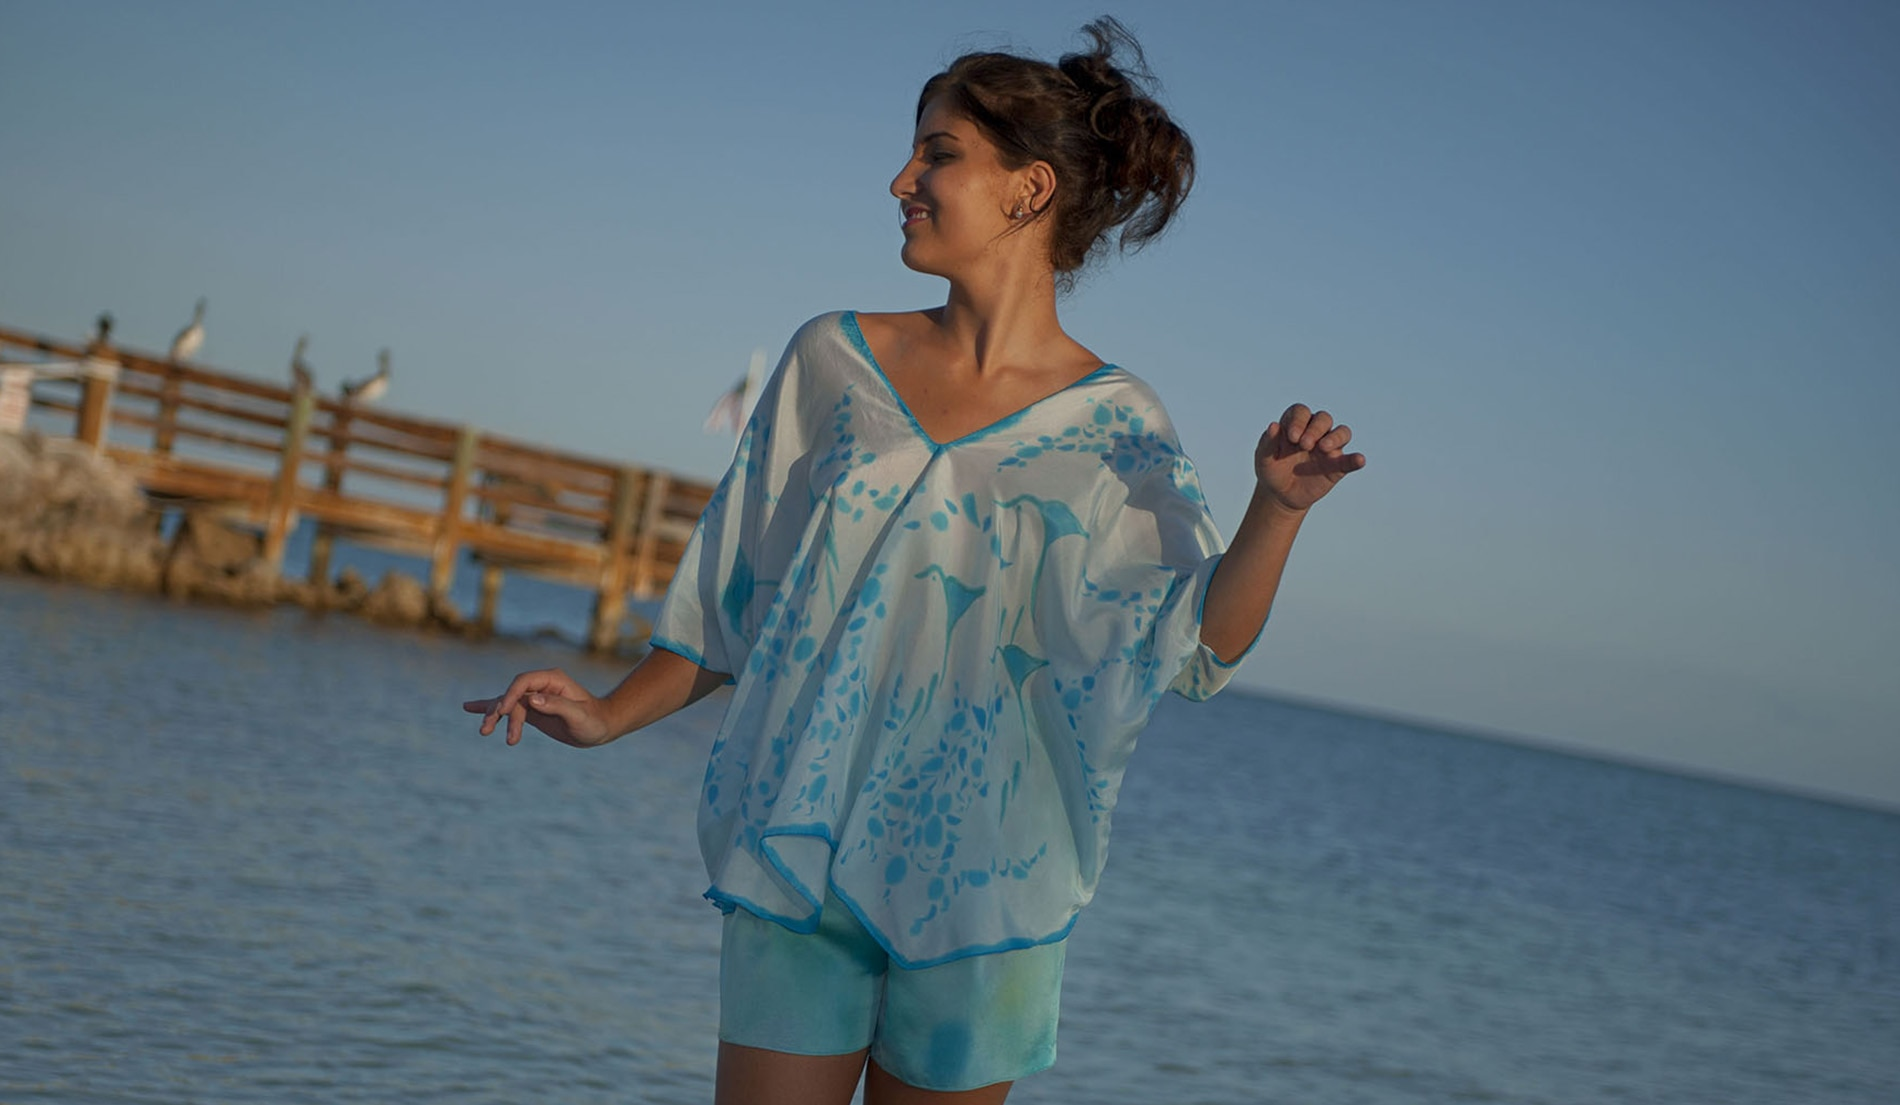 C 001 CAYMAN ISLANDS LOOK 1 FRONT CAFTAN ISLAND TUNIC UPSCALE RESORT WEAR DSC 1675 - beach wedding attire for mother of the bride